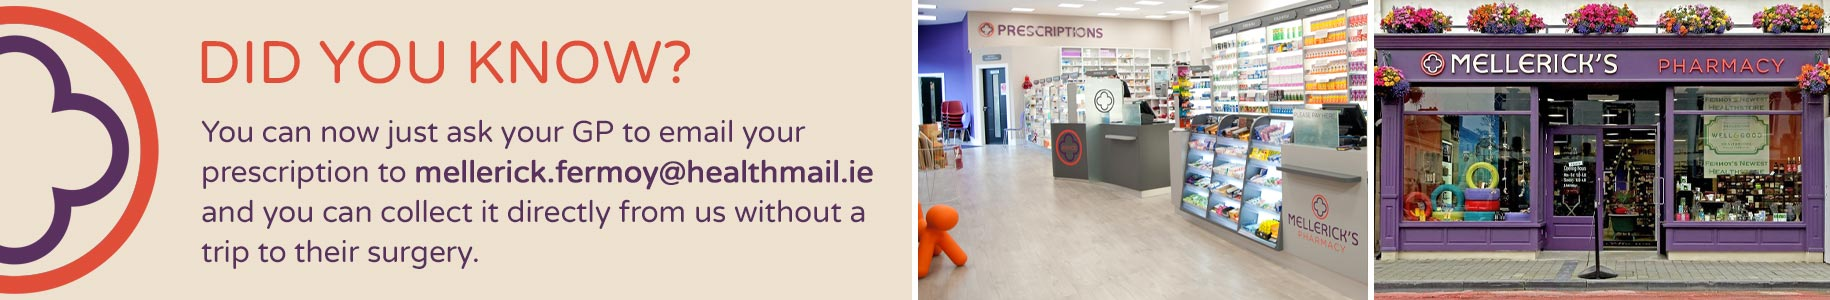 Did you know? You can now just ask your GP to email your prescription to Mellerick's Pharmacy and you can collect it directly from us without a trip to their surgery.